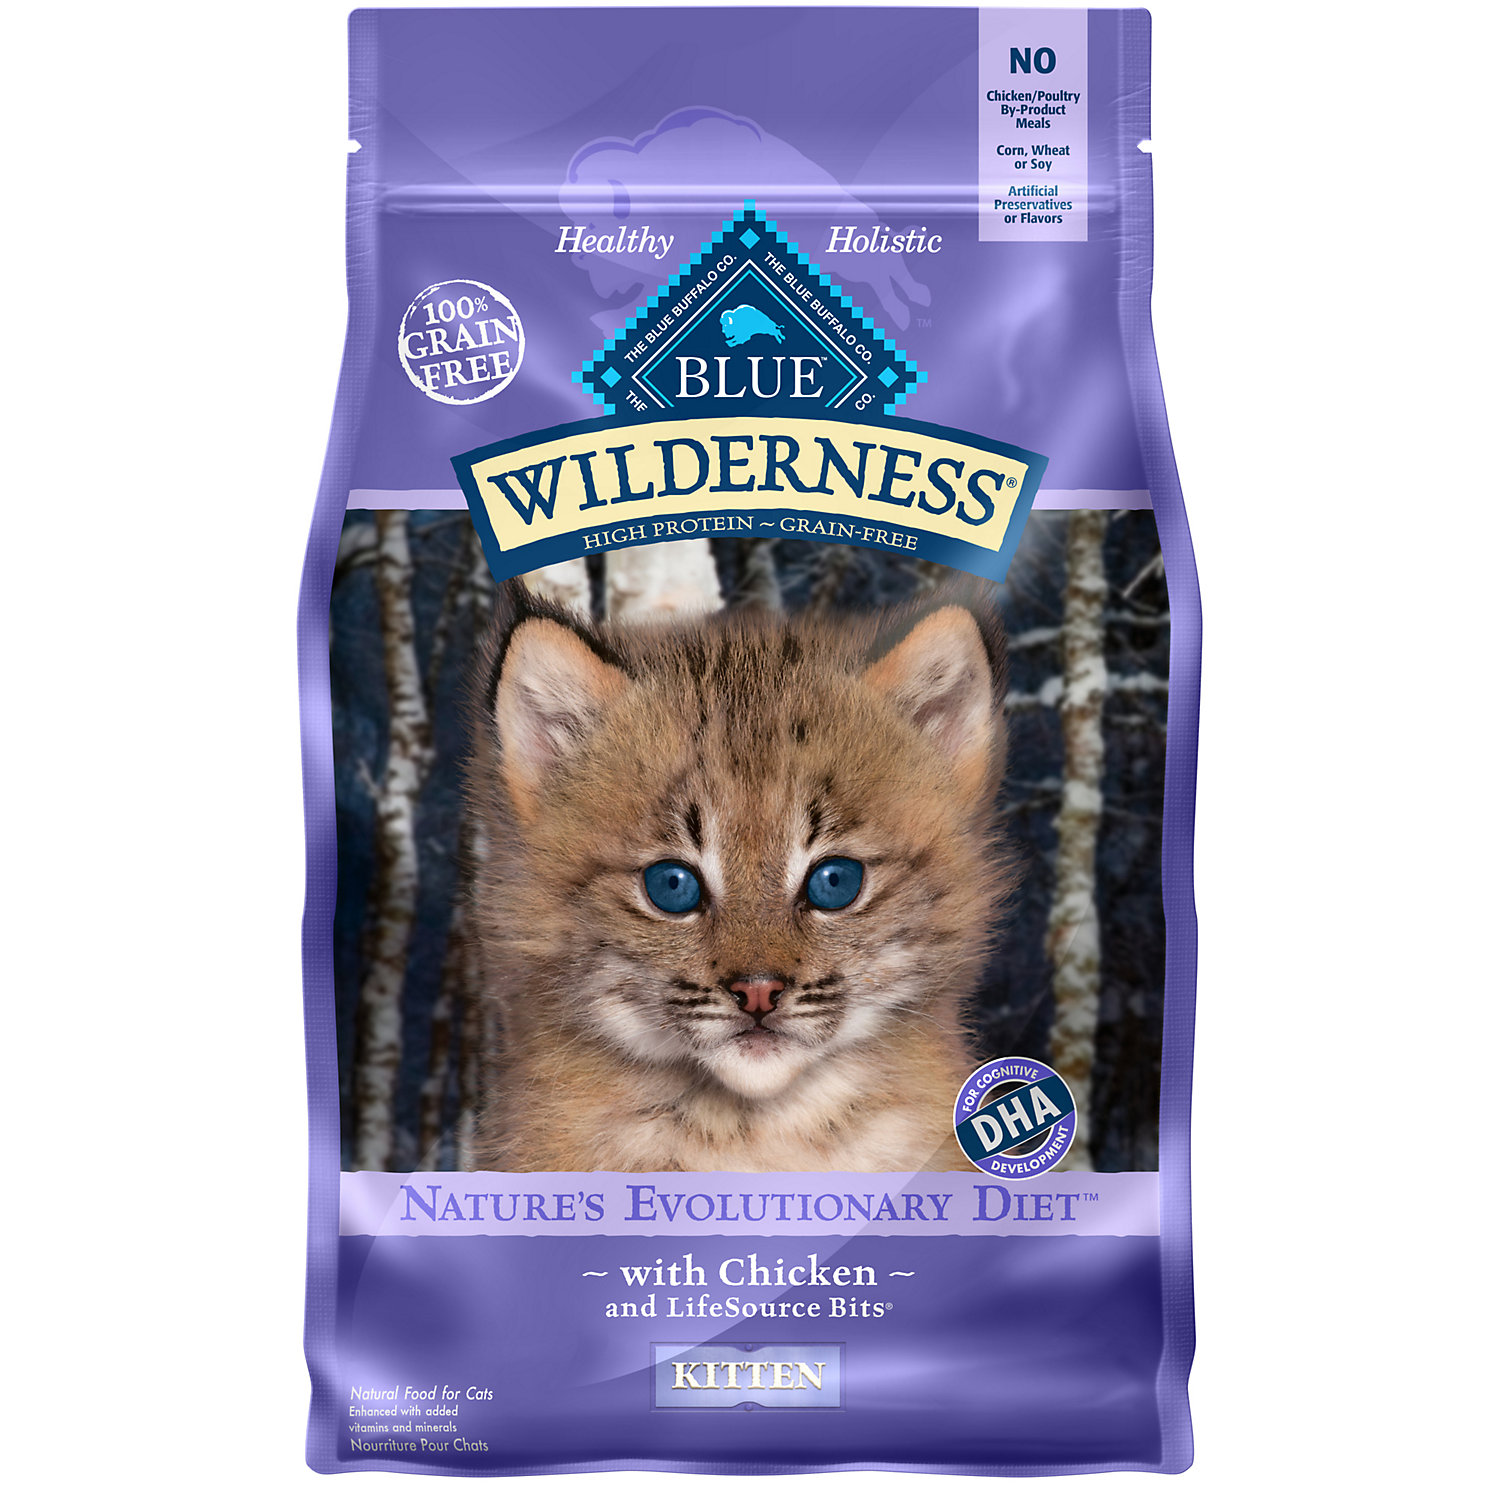 Blue Buffalo Wilderness Grain-Free Kitten Food, 5 lbs.